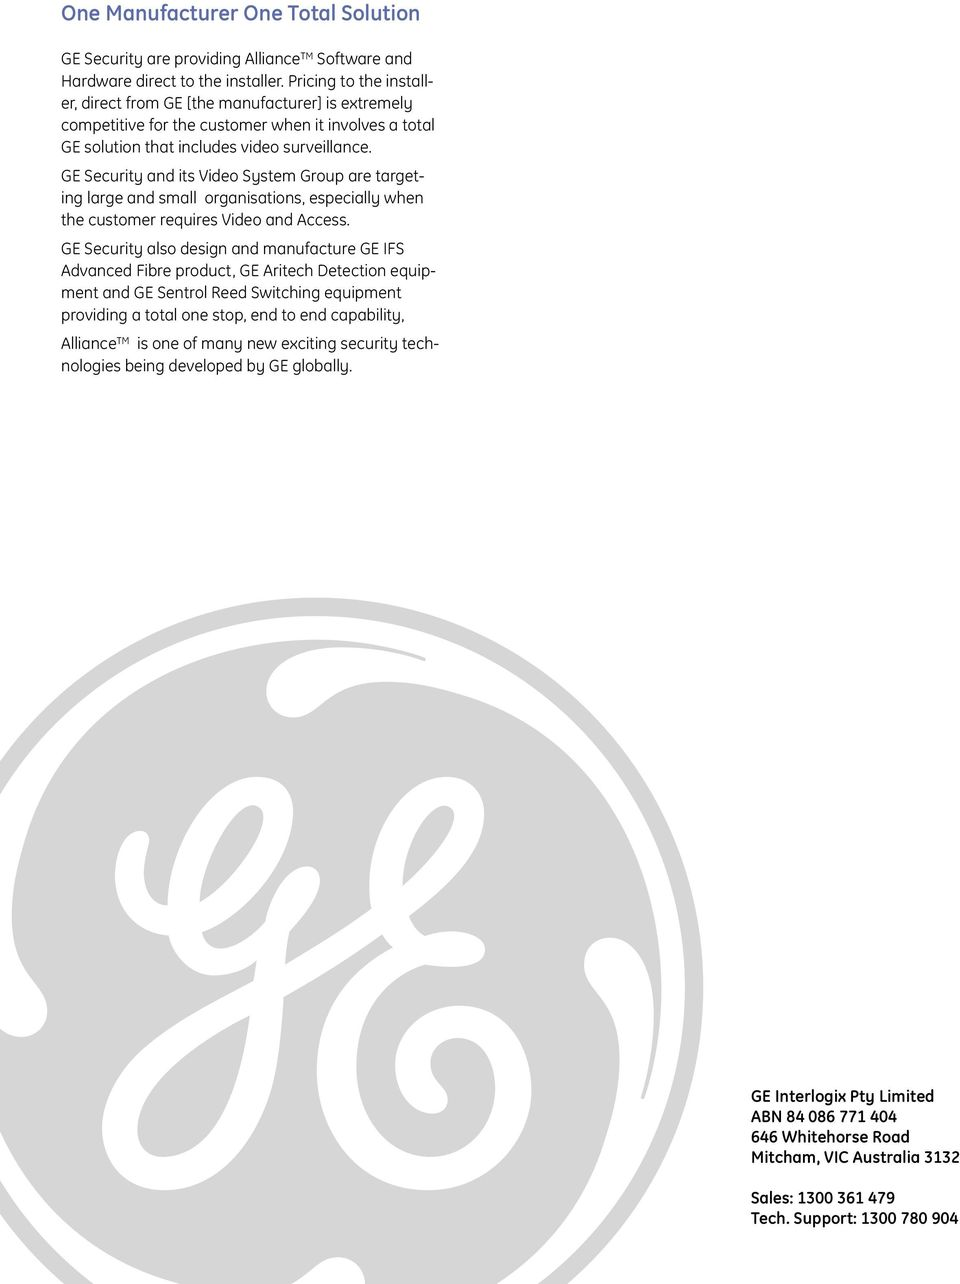 GE Security and its Video System Group are targeting large and small organisations, especially when the customer requires Video and Access.